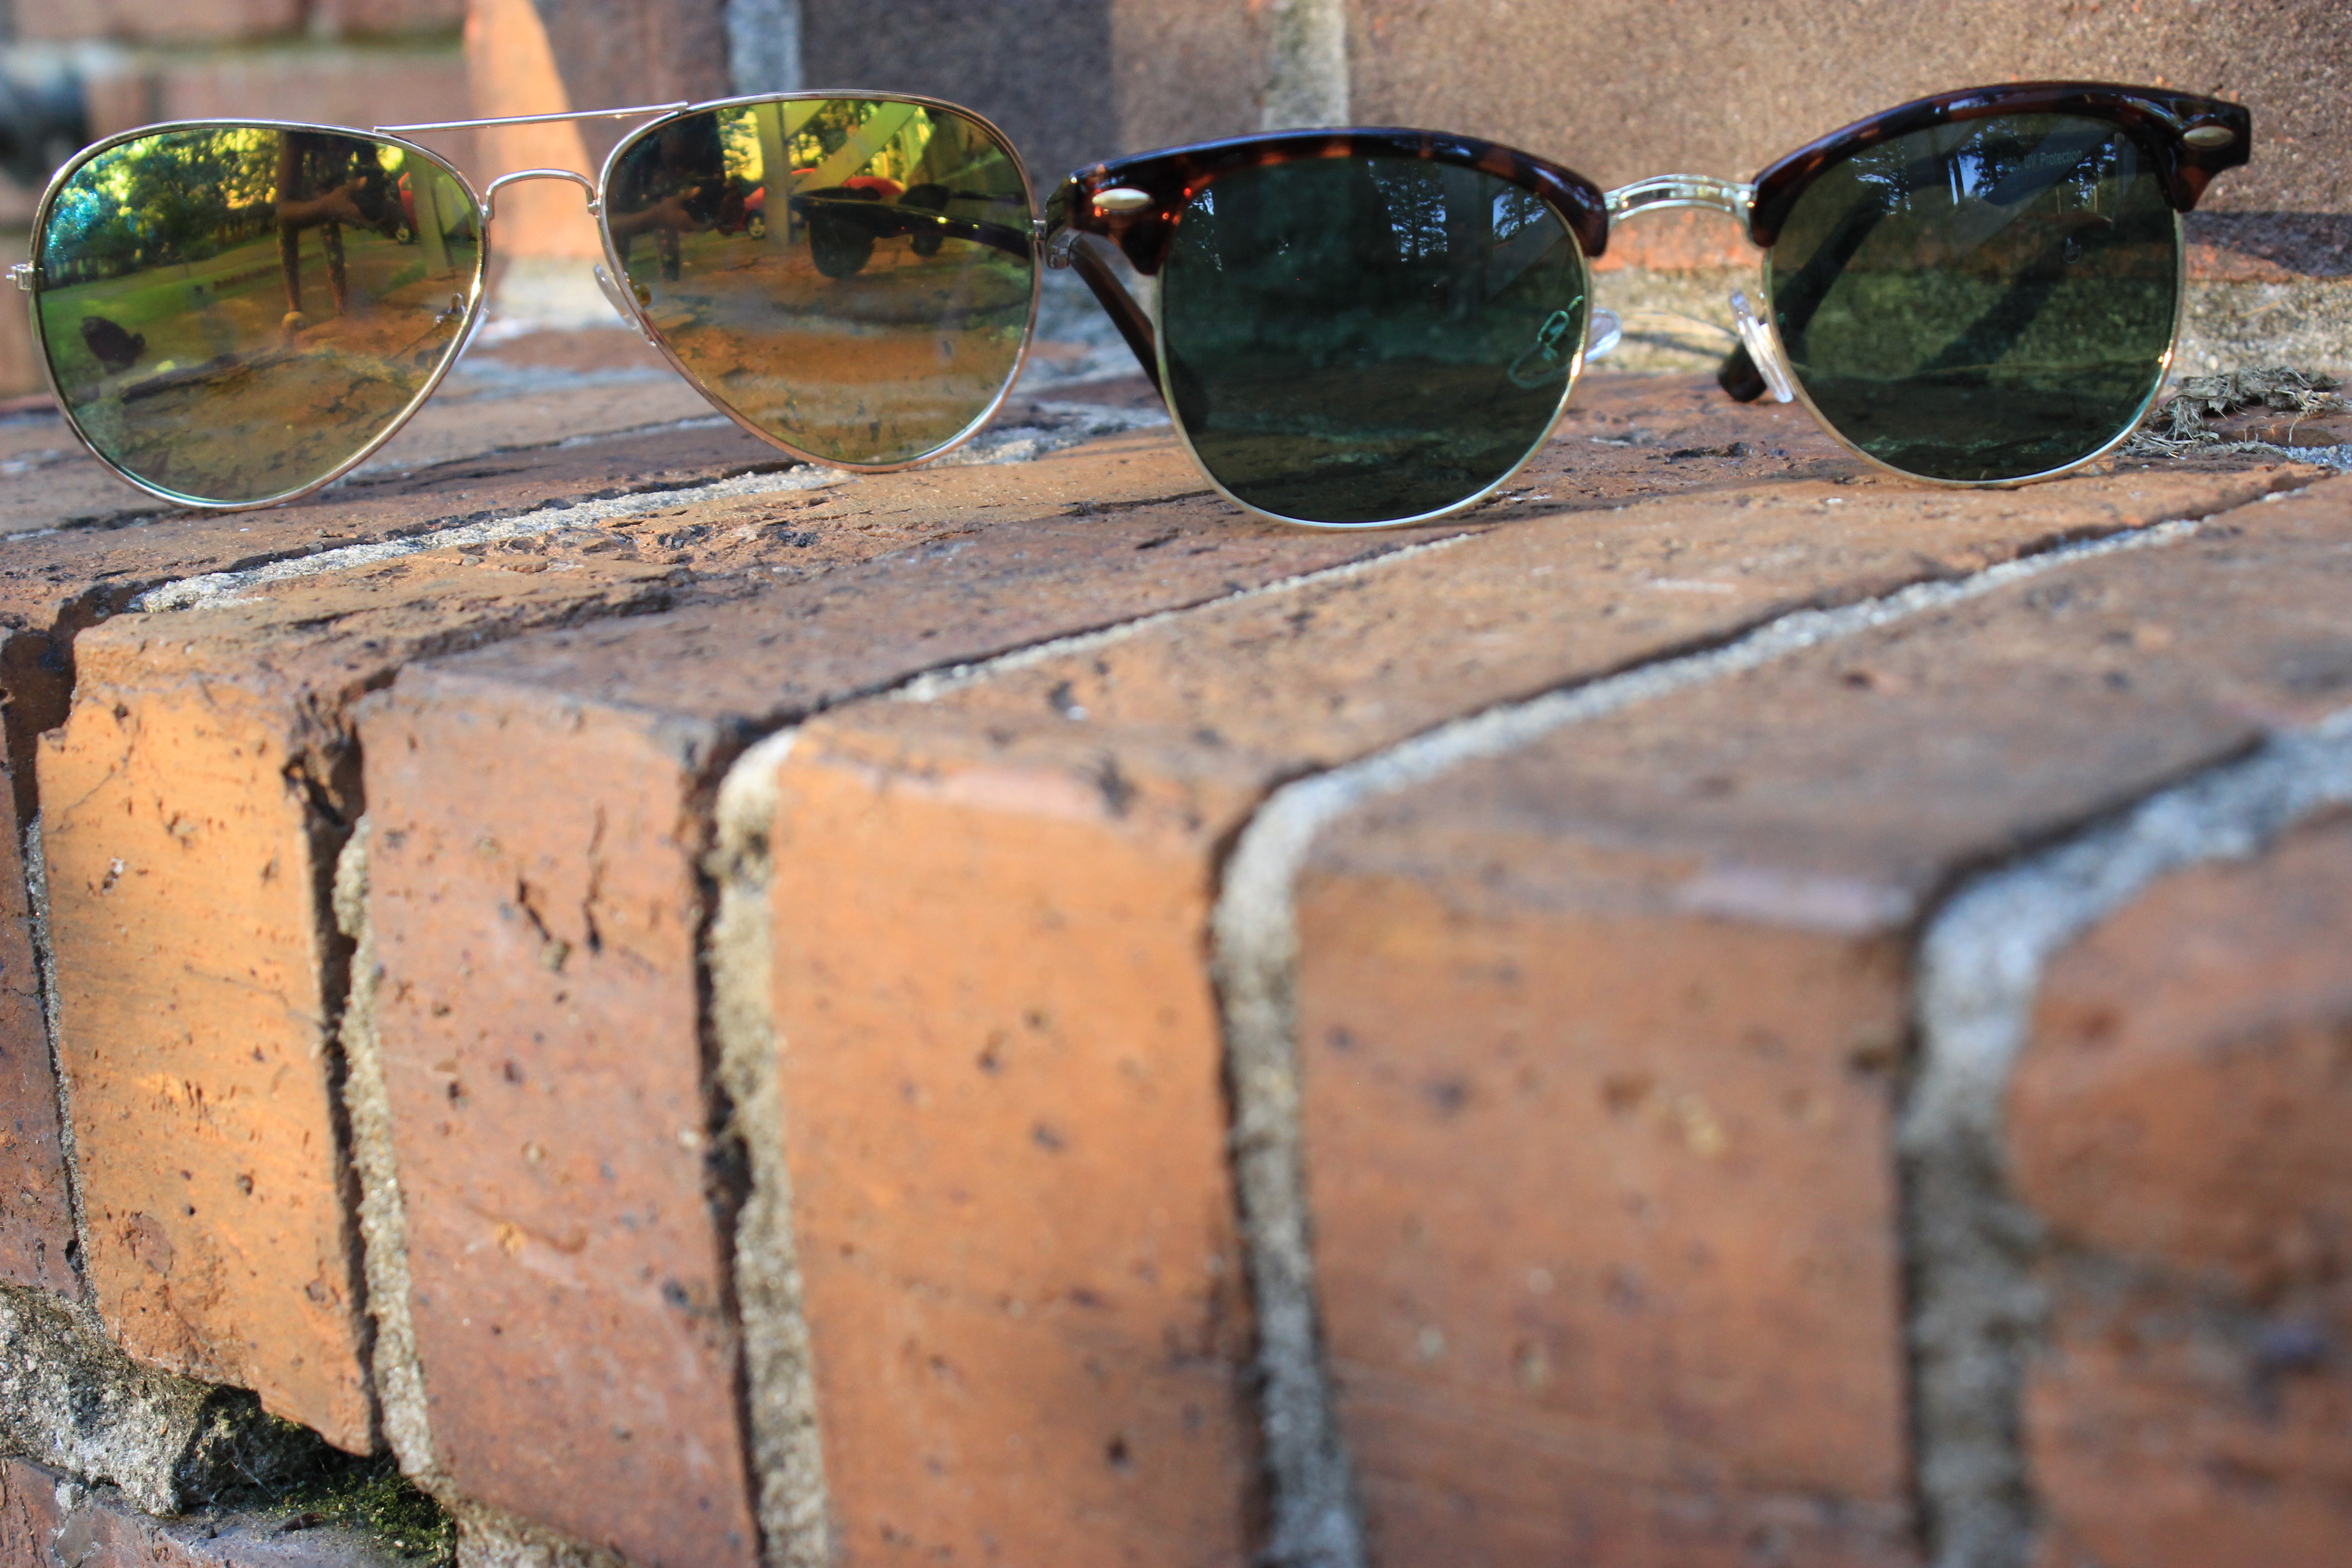 Style-Guide-Summer-Sunglasses-Summer-Sunglass-trends-2016-mirror-tinted-sunglasses-mirrored-ombre-effect-lenses-aviator-trend-2016-cat-eye-frame-sunglasses-2016-round-frame-sunglass-trend-thick-square-frame-sunglasses-Oohlalablog-13